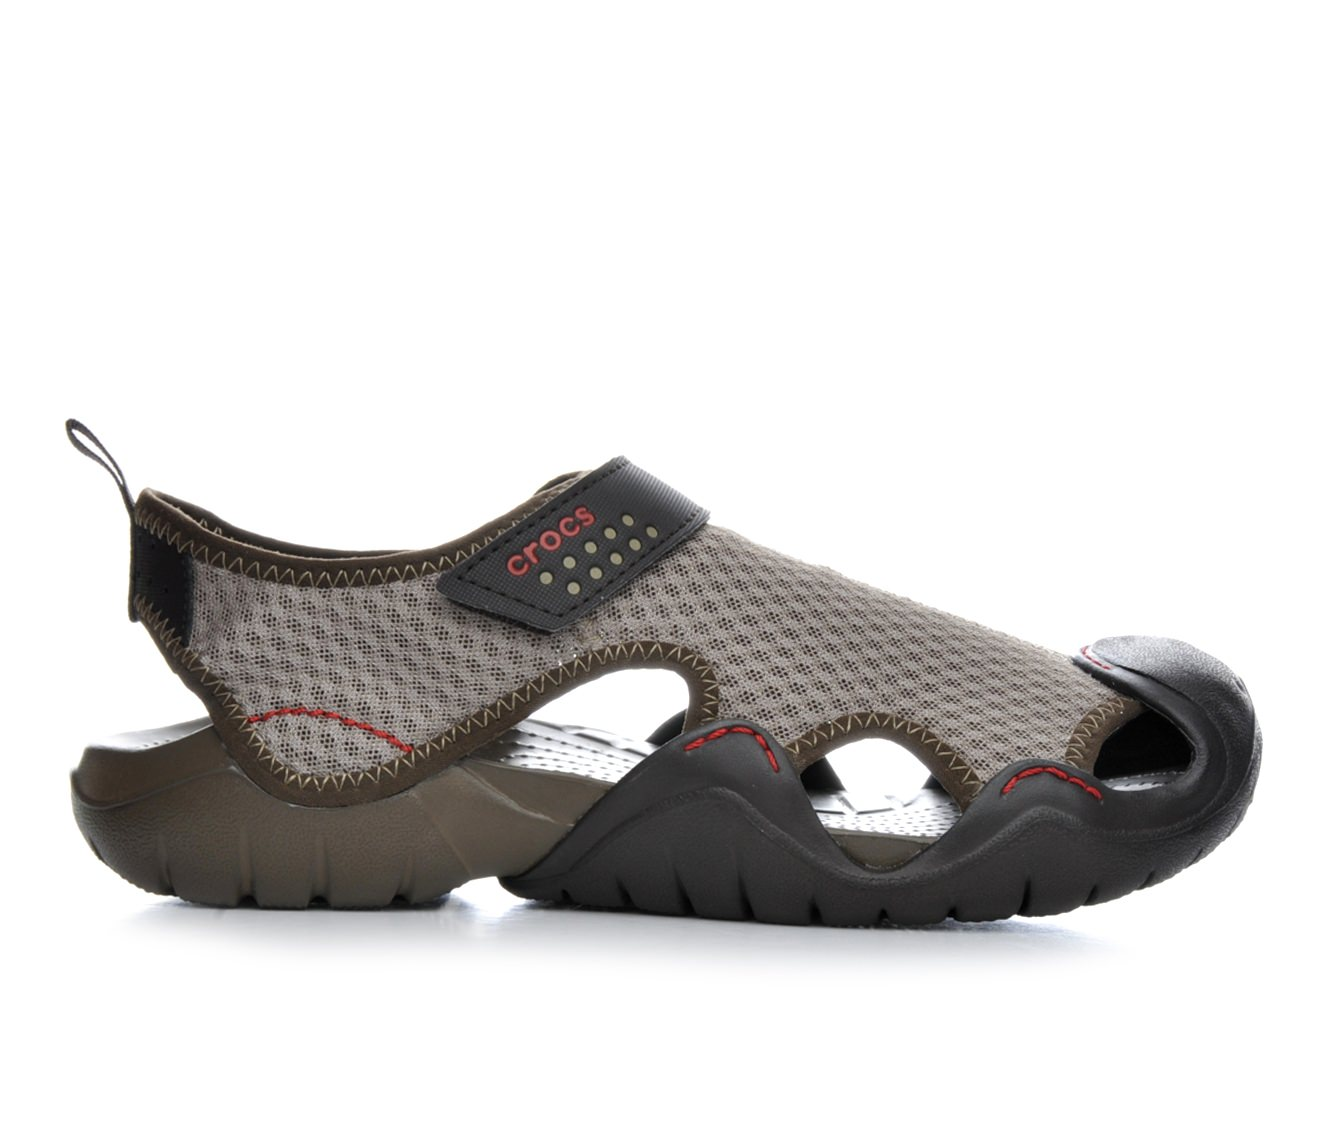 Men's Crocs Swiftwater Sandal M Sandals (Brown)